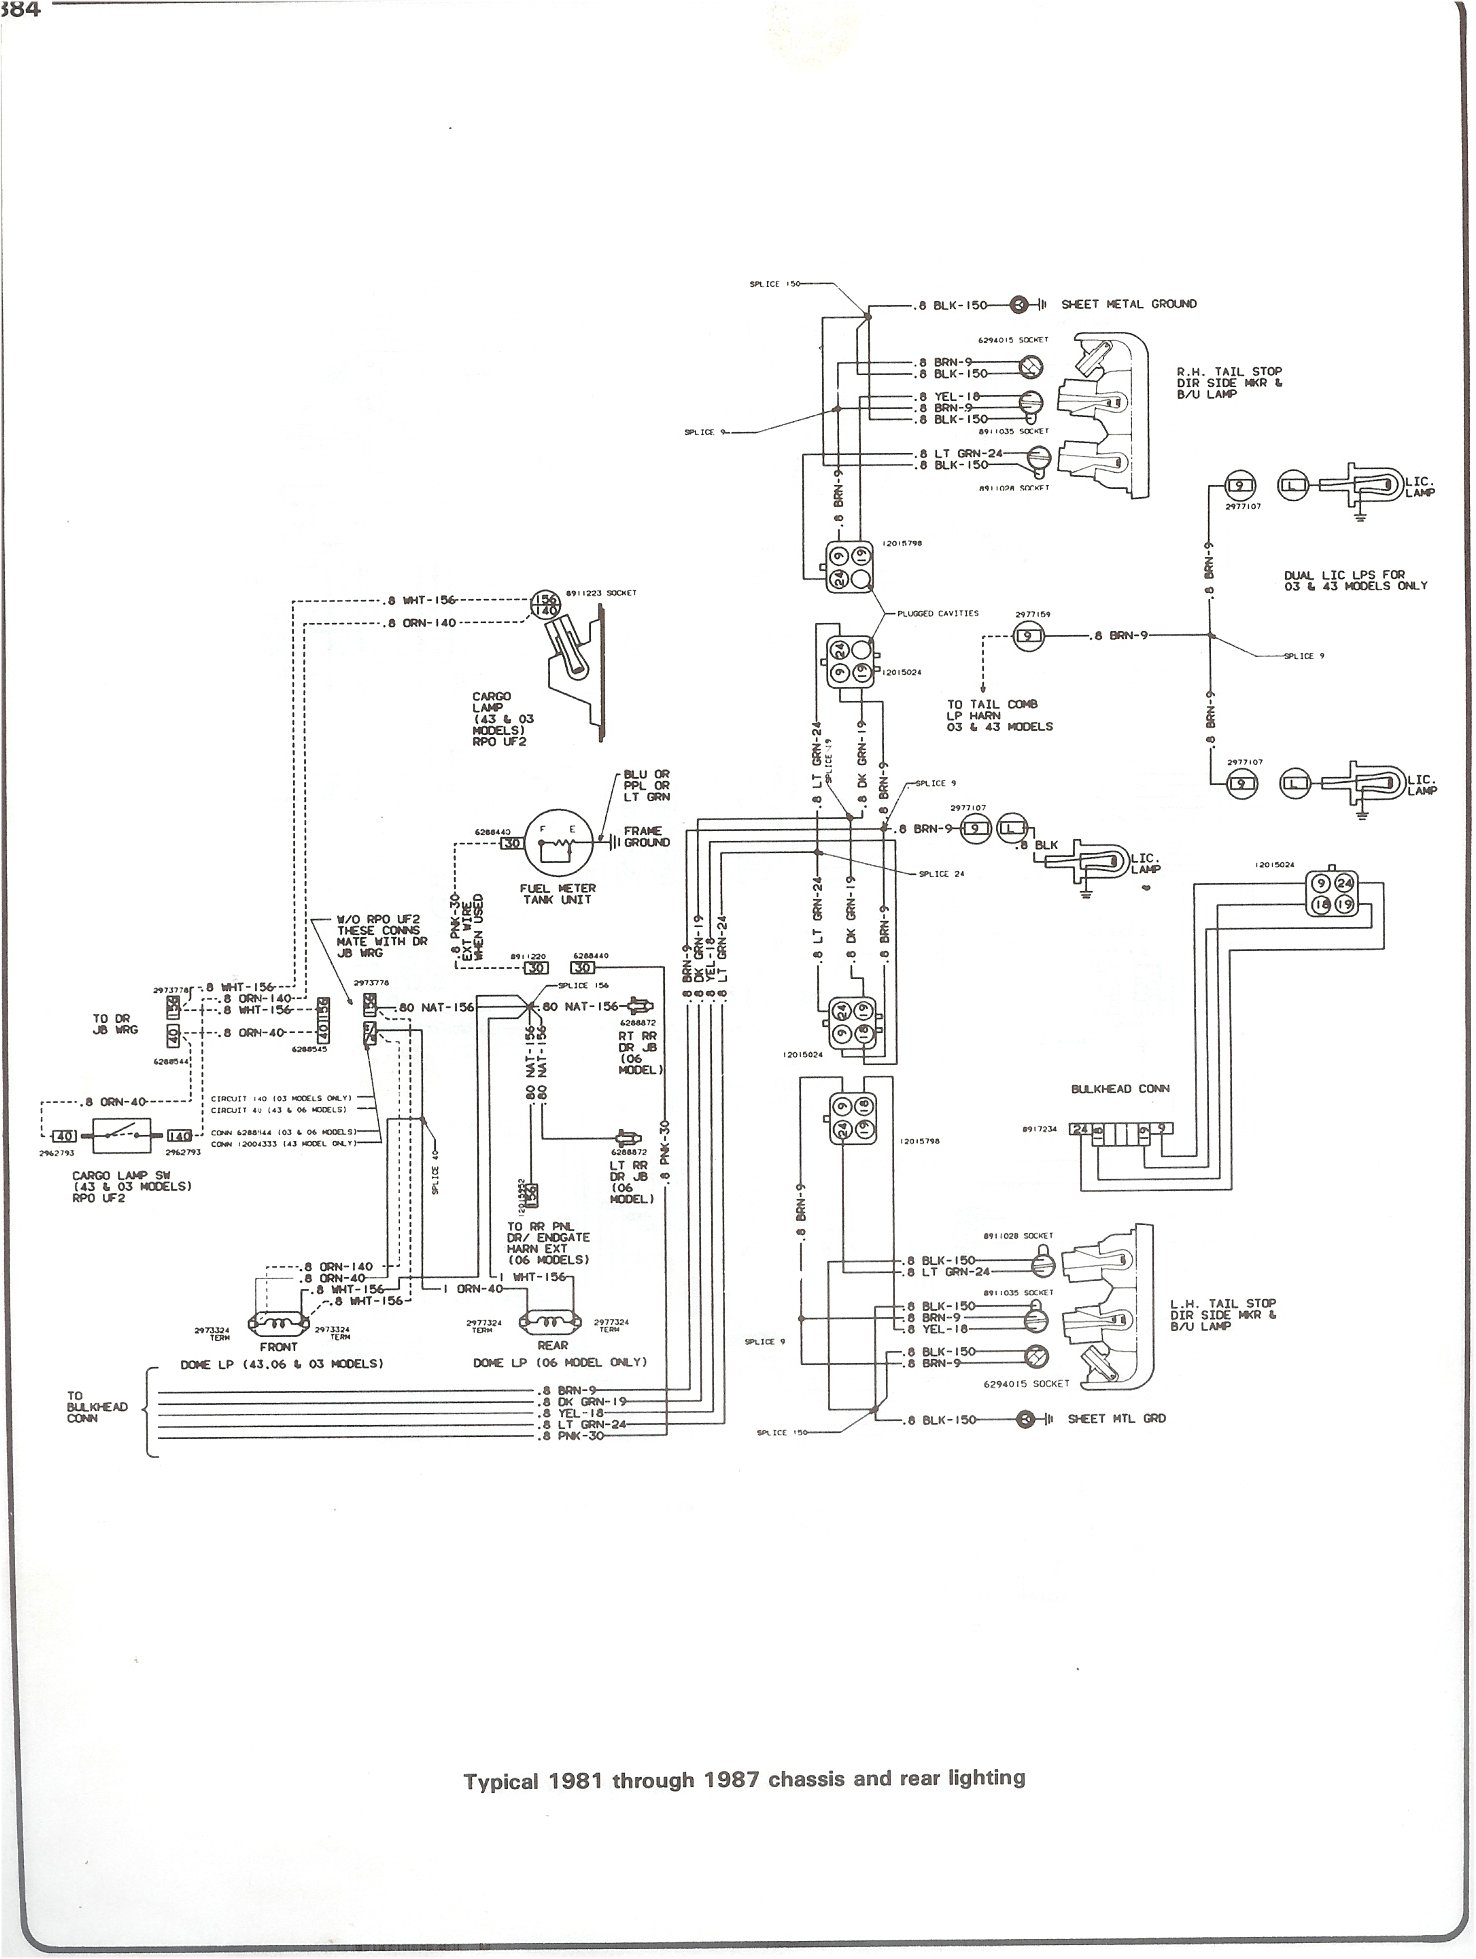 96 Ford F350 Fuse Box moreover F Door Wiring Diagram Automotive Fuse Panel Box Explained Diagrams Trusted Symbols Ford Lariat 2003 F250 7 3 Cell Layout in addition Chevy Silverado Drawing in addition 2005 Mercury Mariner Wiring Diagram together with Ford F Fuse Box Trusted Wiring Diagram Focus Zx Free Download Oasis Dl Co. on 2001 ford taurus radio wiring diagram